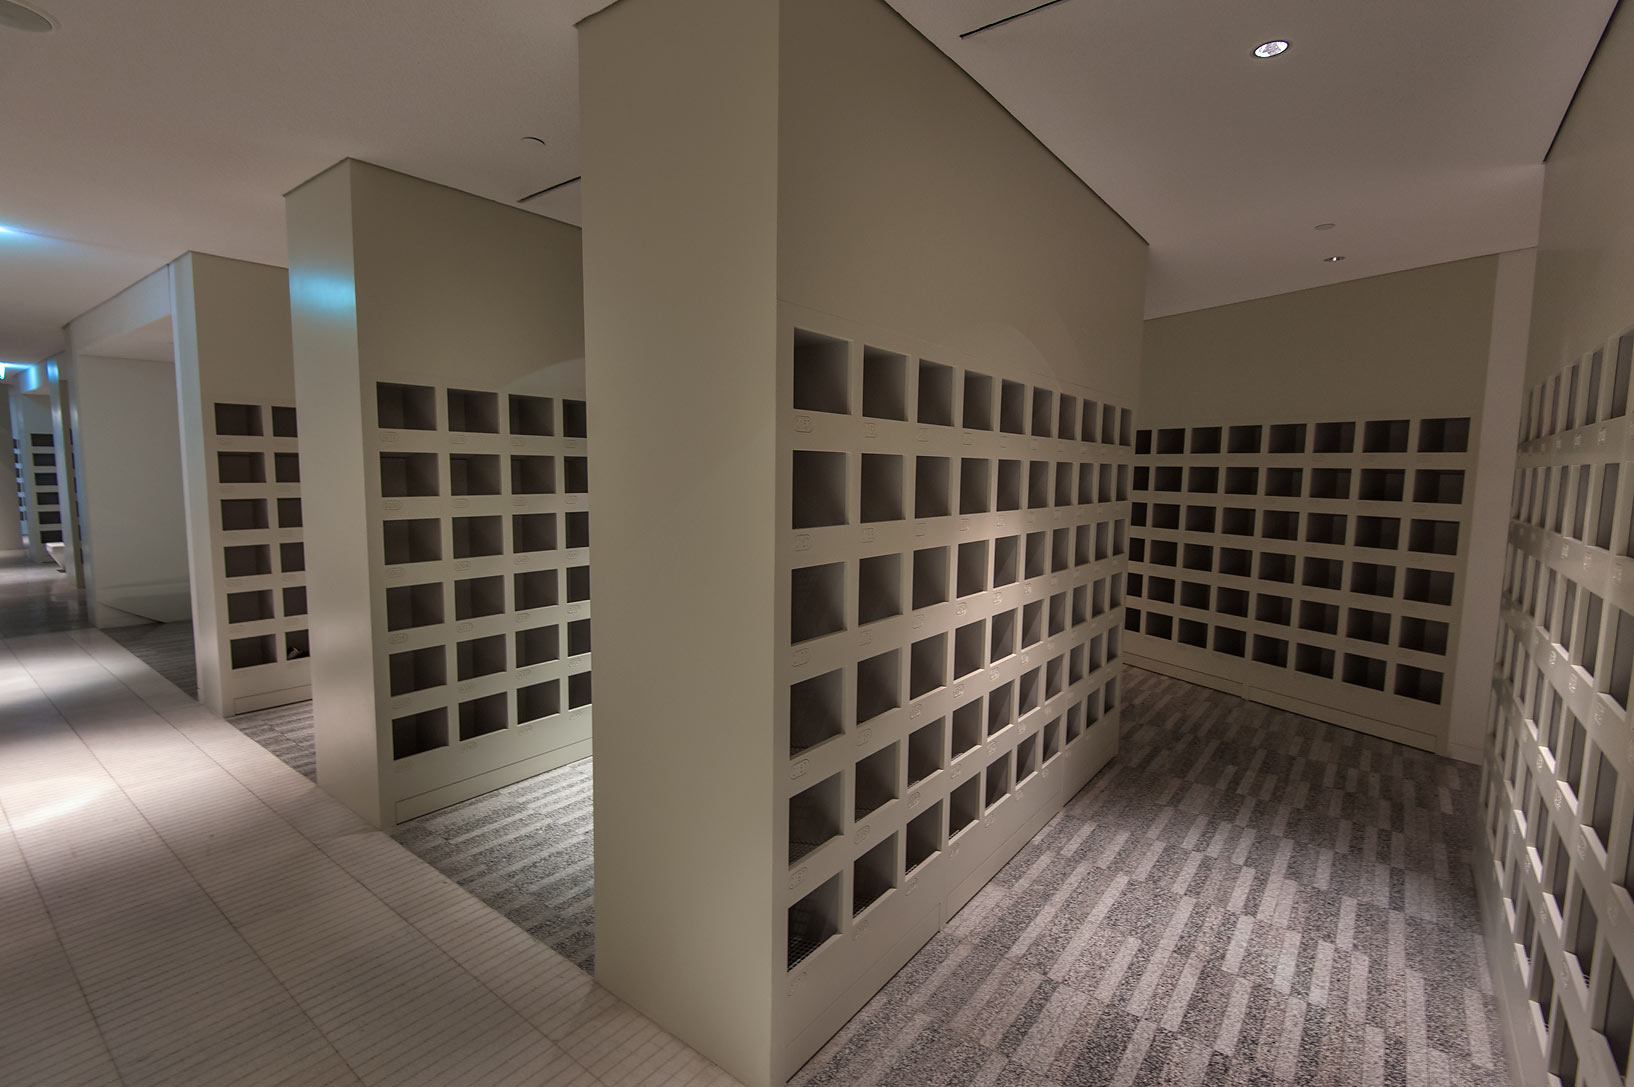 Shoe lockers sections in Education City Mosque. Doha, Qatar